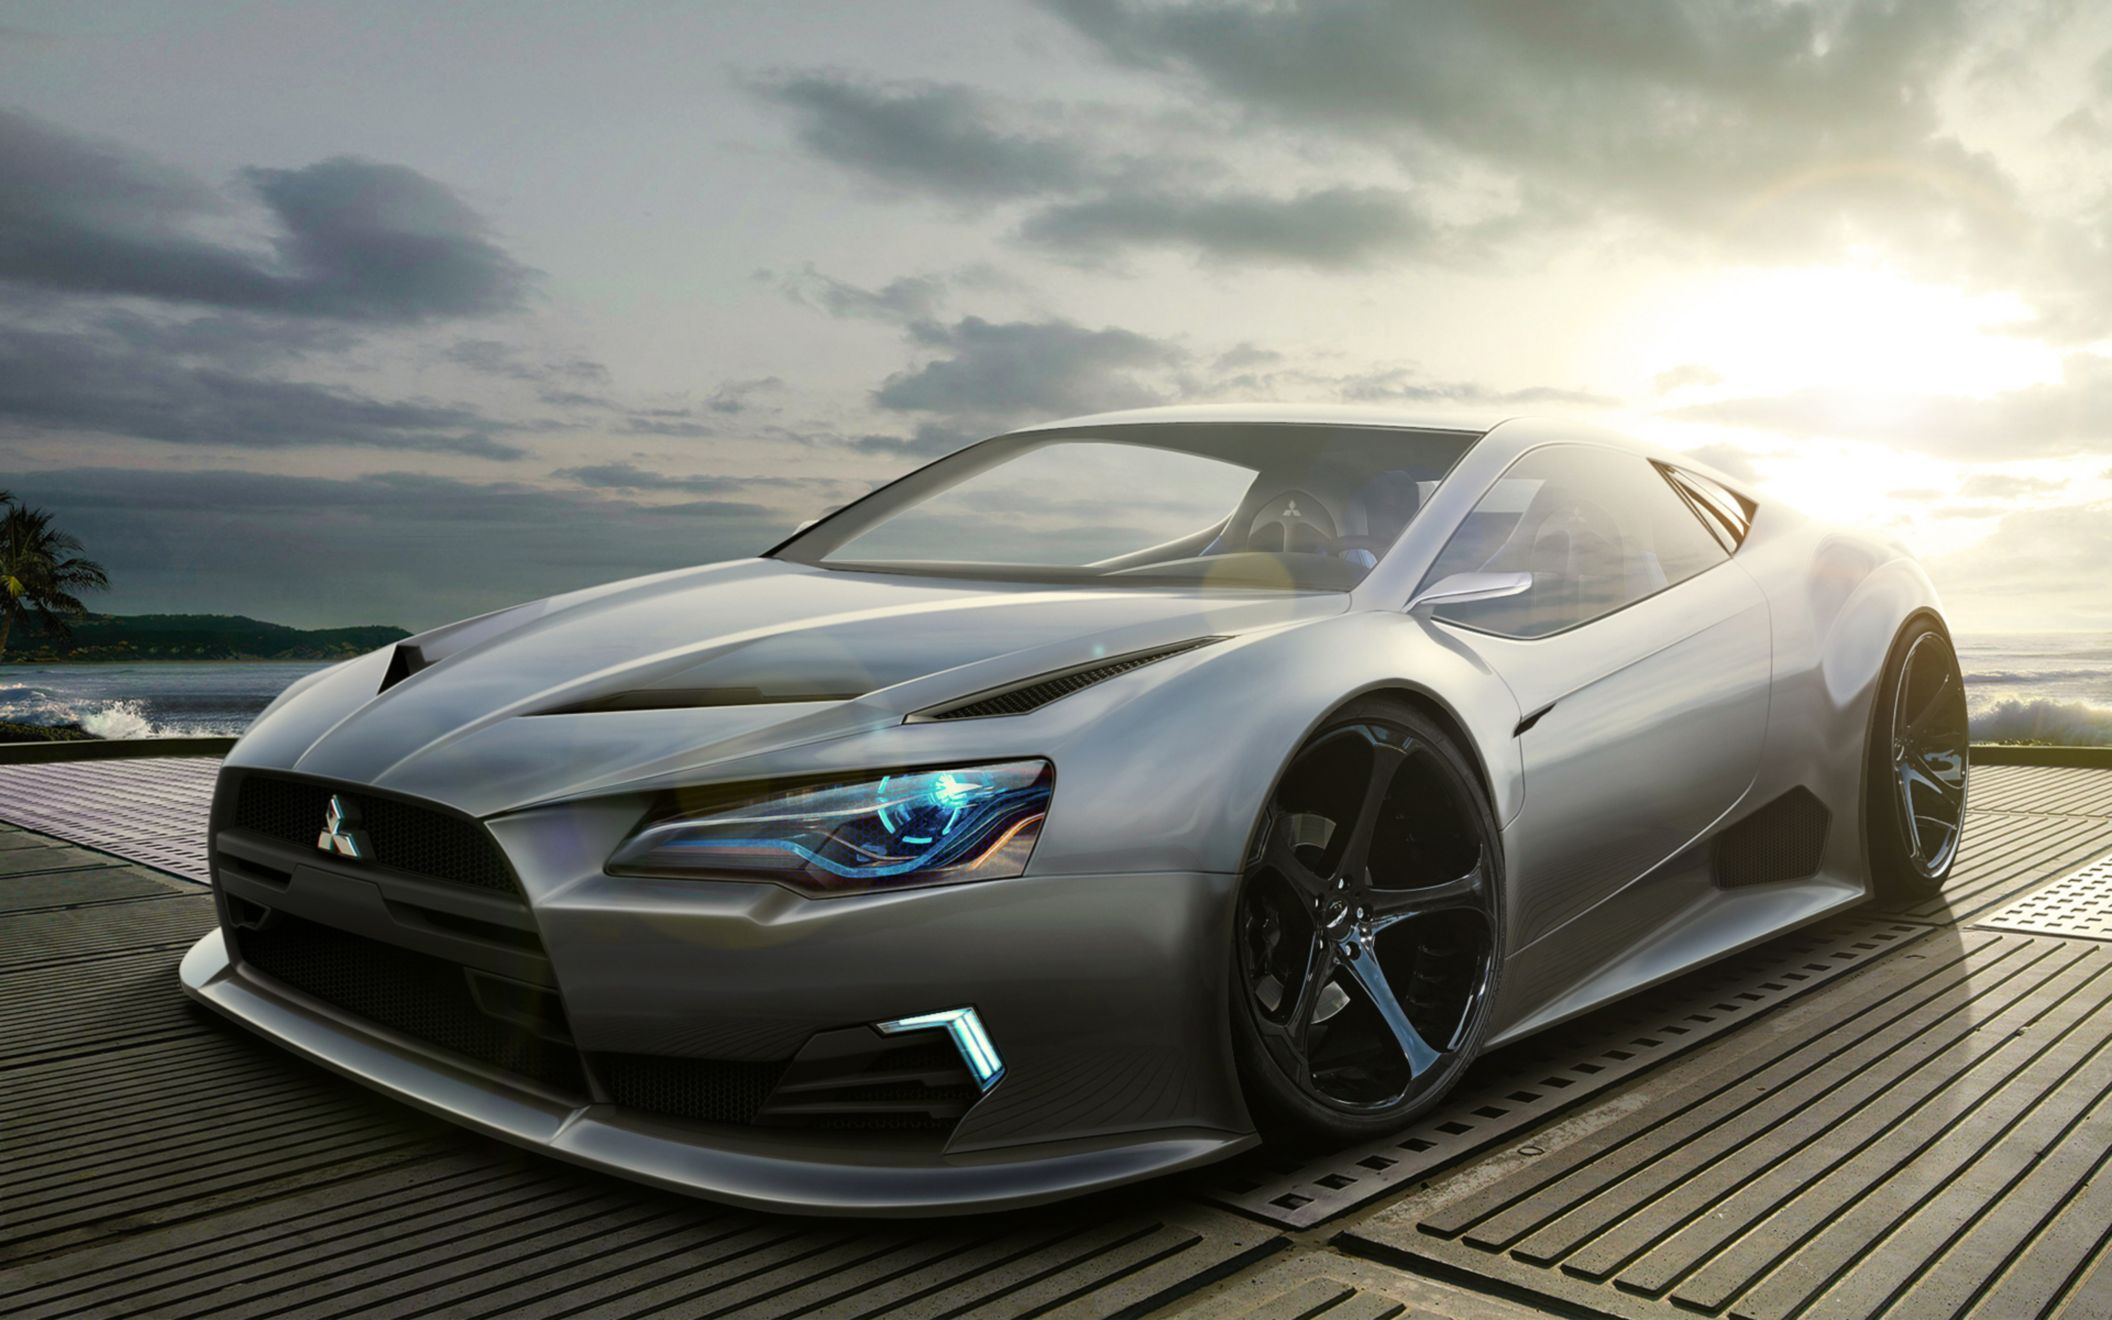 Download free HD Mitsubishi Concept Wide Wallpaper, image